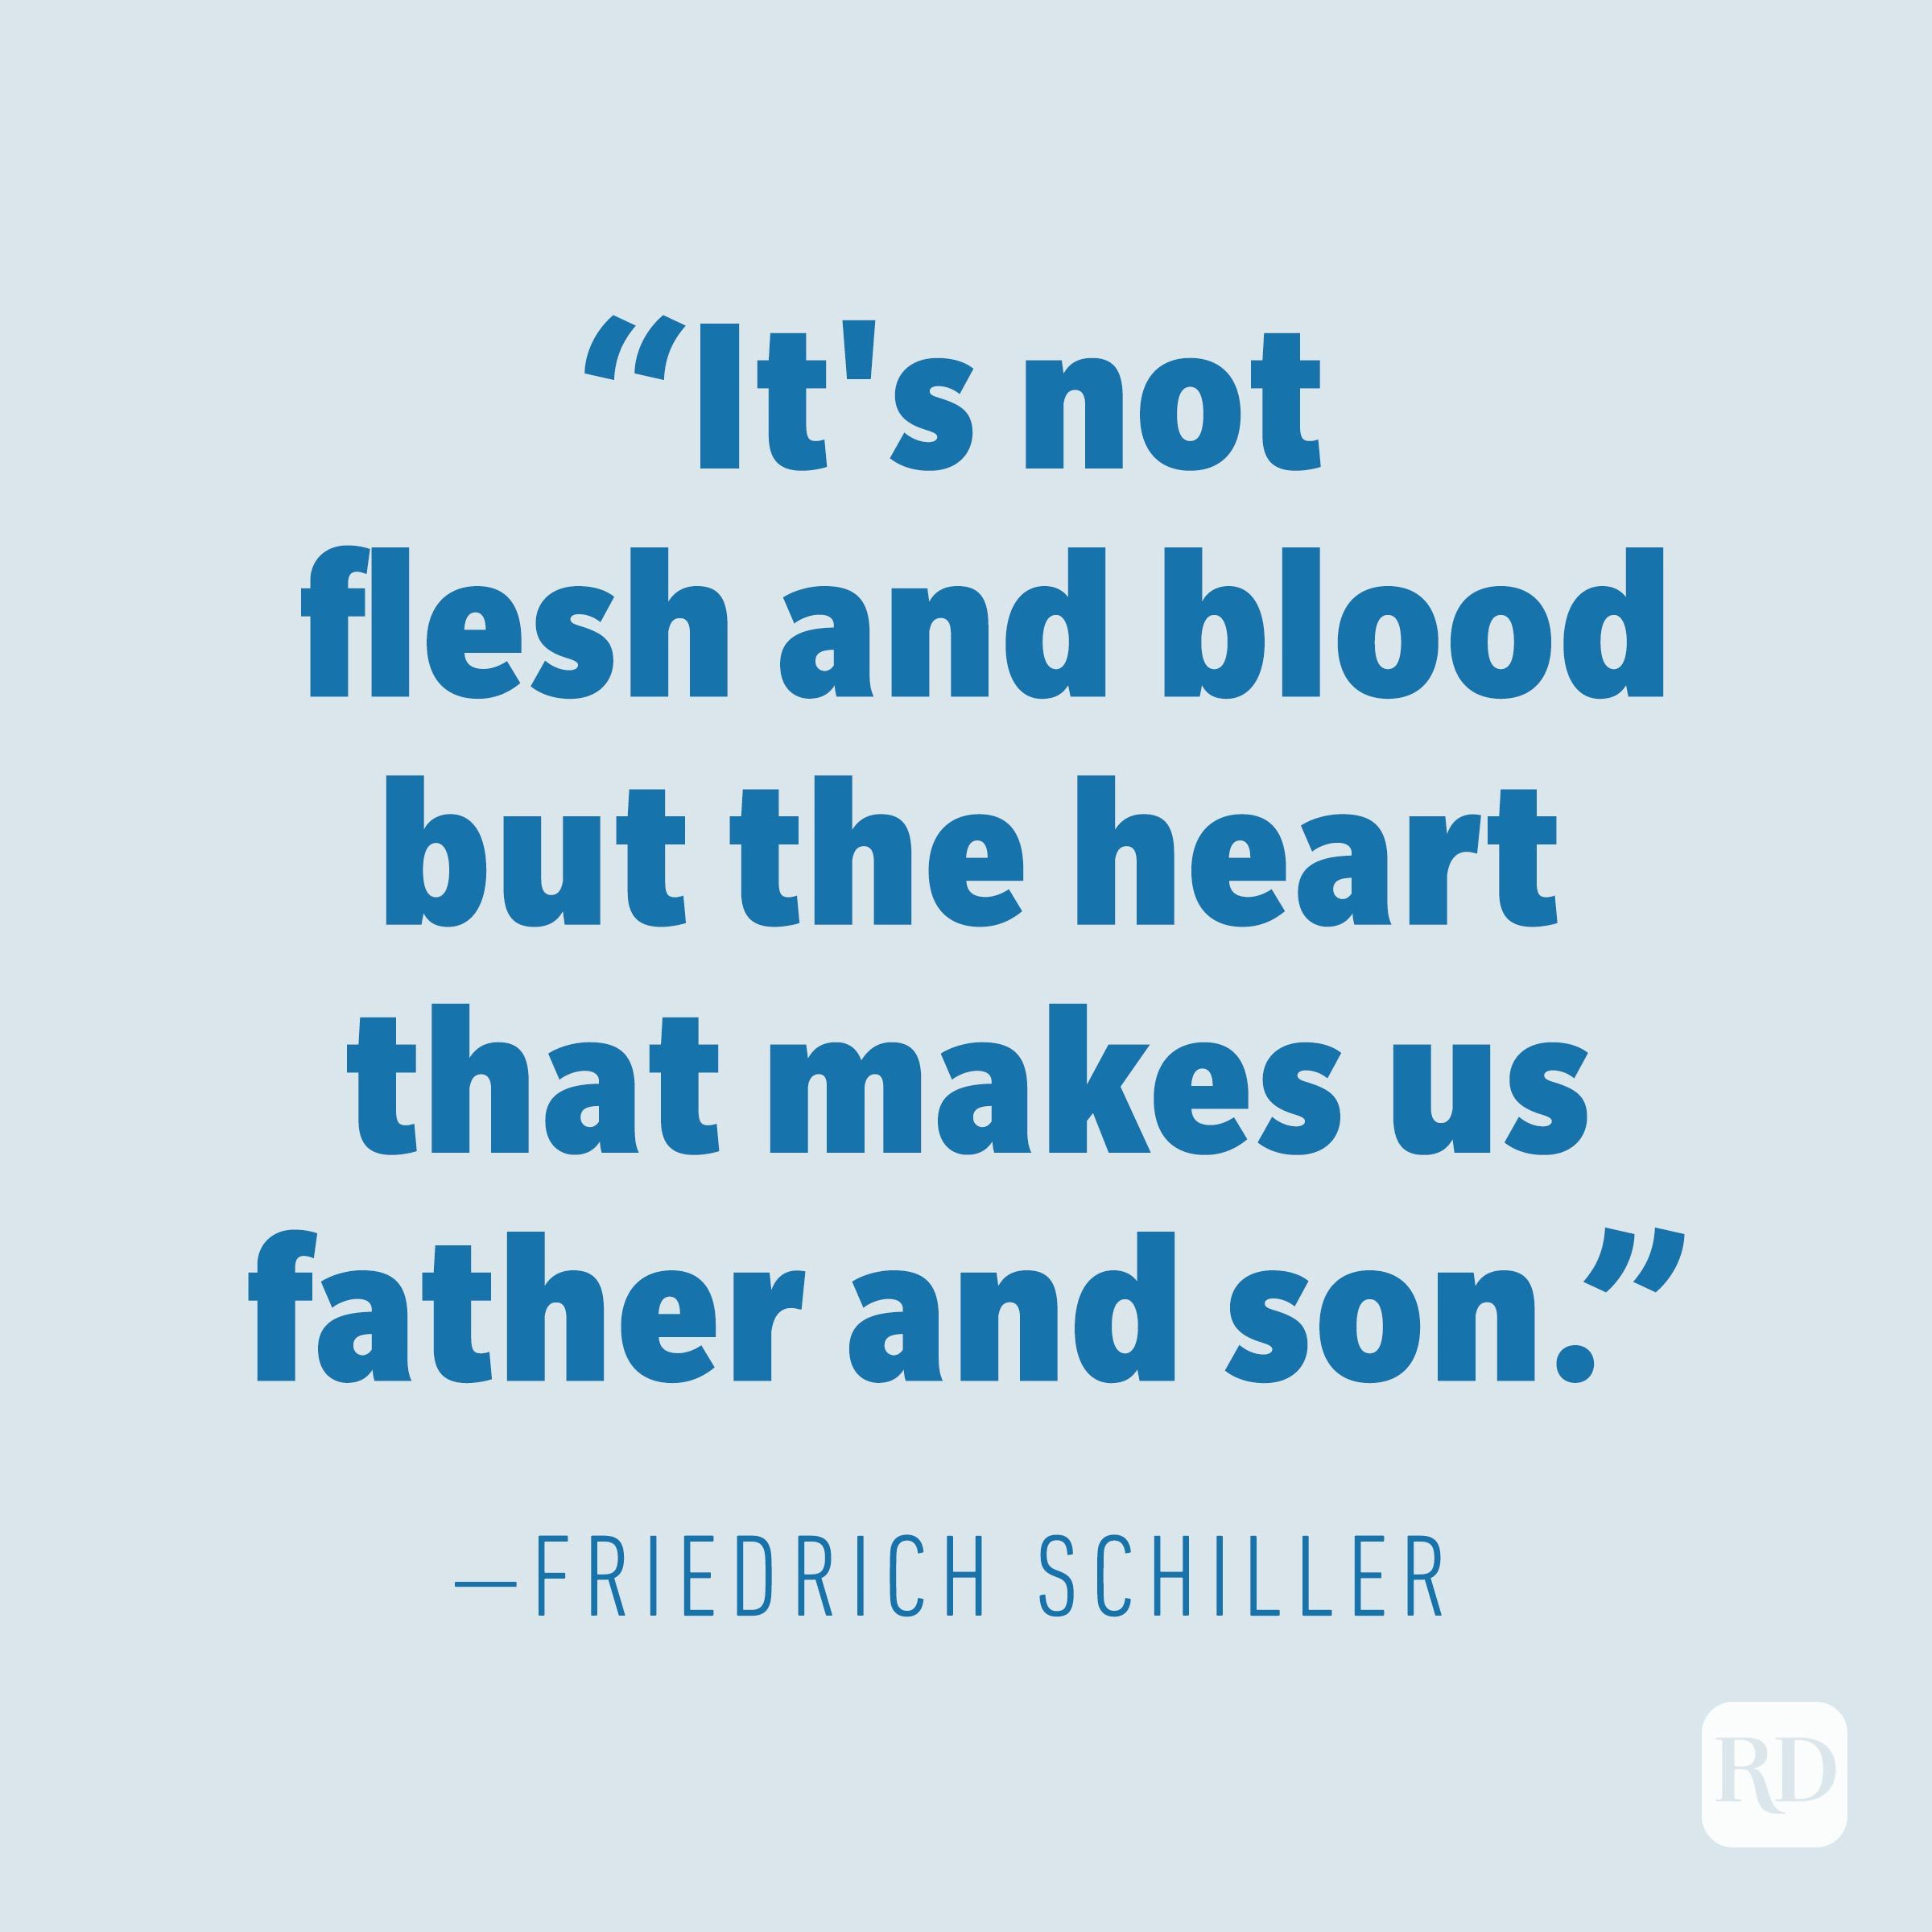 """It's not flesh and blood but the heart that makes us father and son."" —FRIEDRICH SCHILLER"